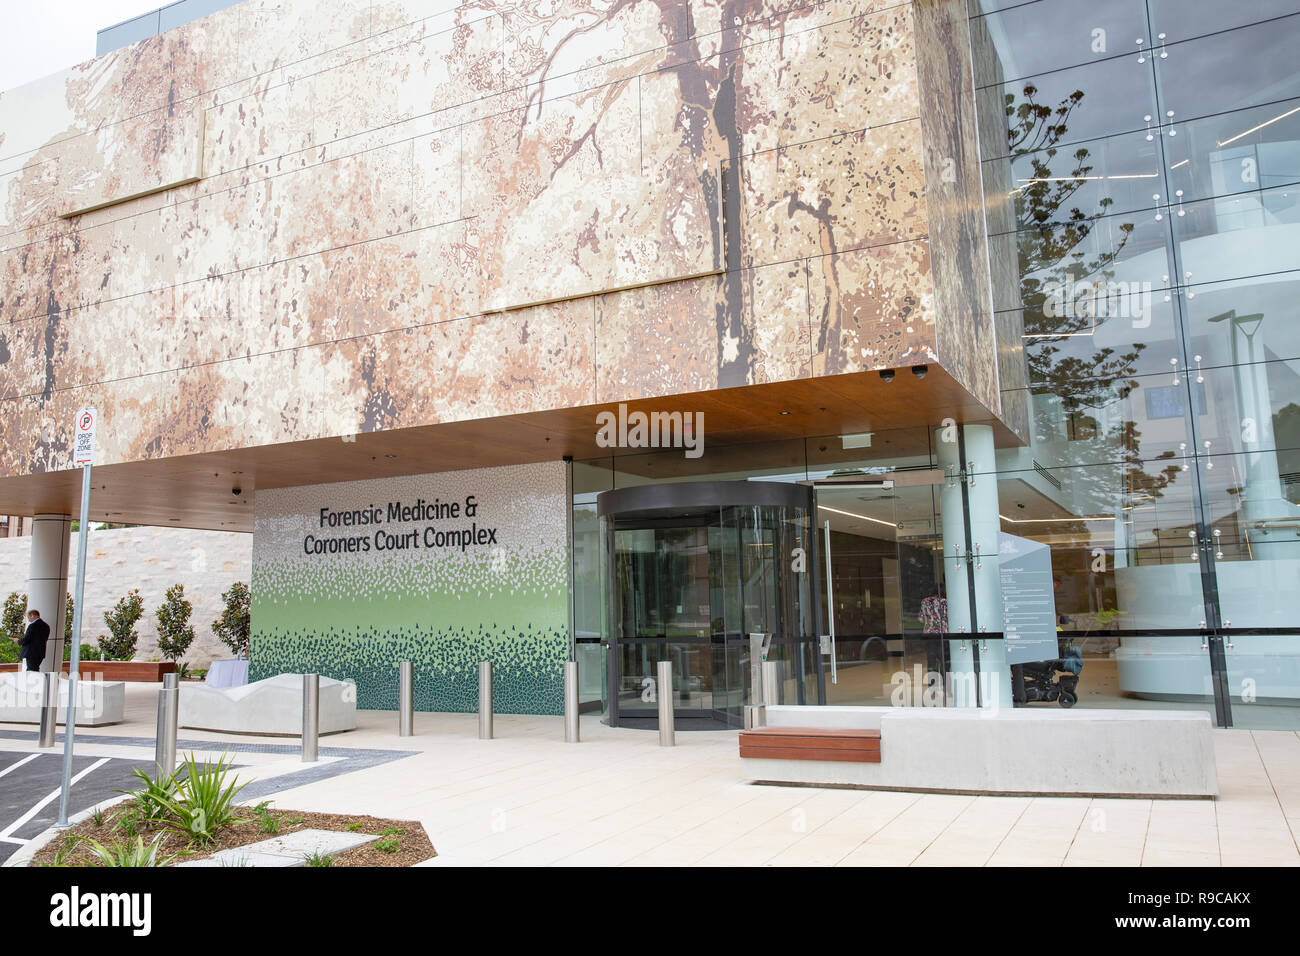 Forensic medicine and coroners court building in lidcombe Sydney, the complex was opened in December 2018,Sydney,Australia - Stock Image